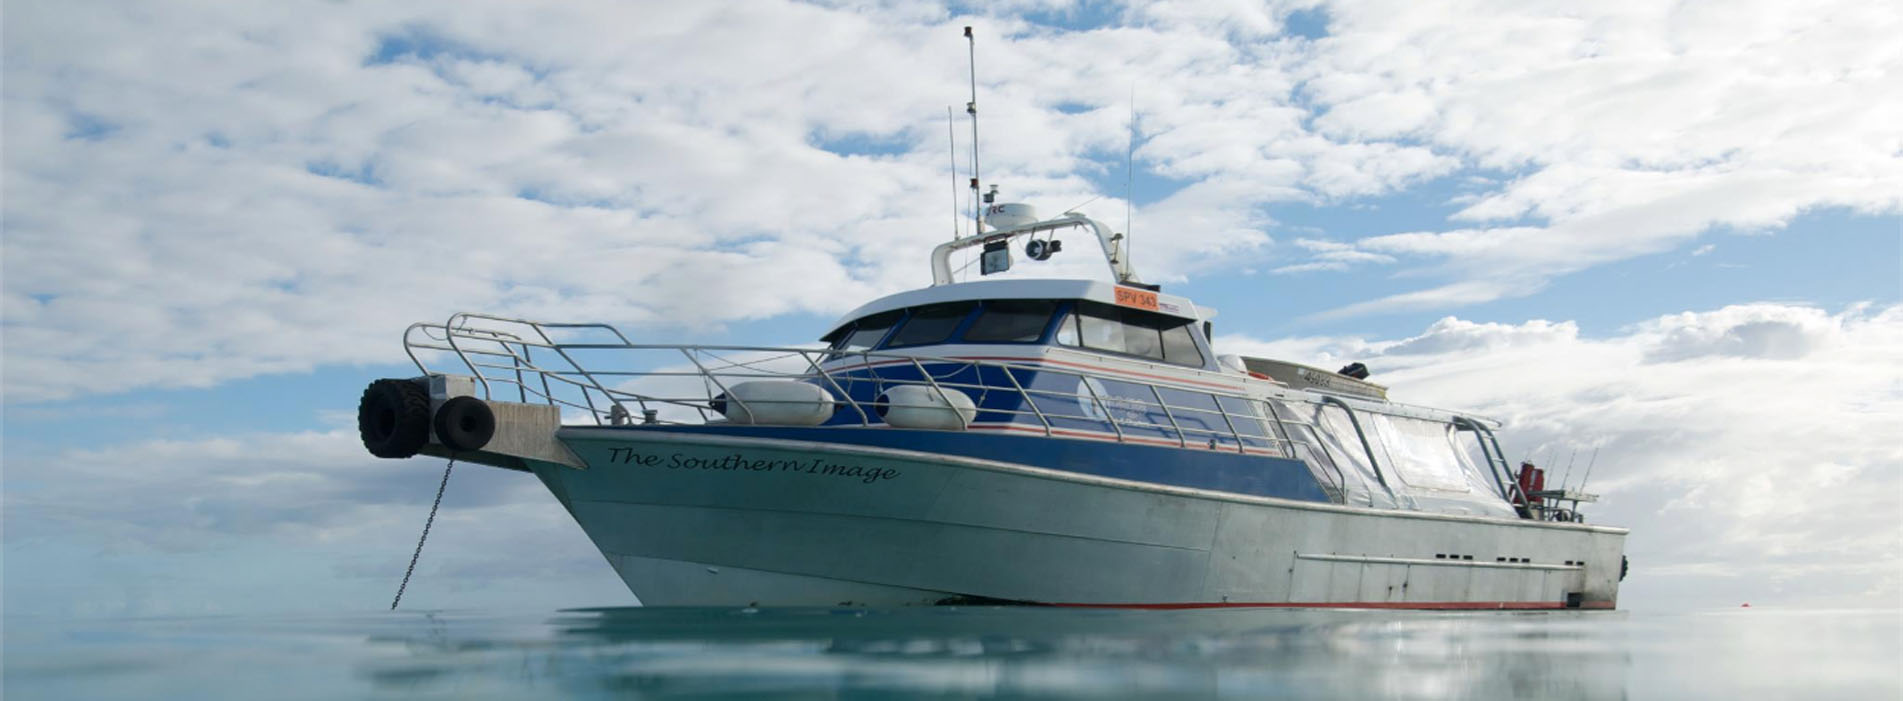 SOUTHERN IMAGE perth boat charters swan river Rottnest island